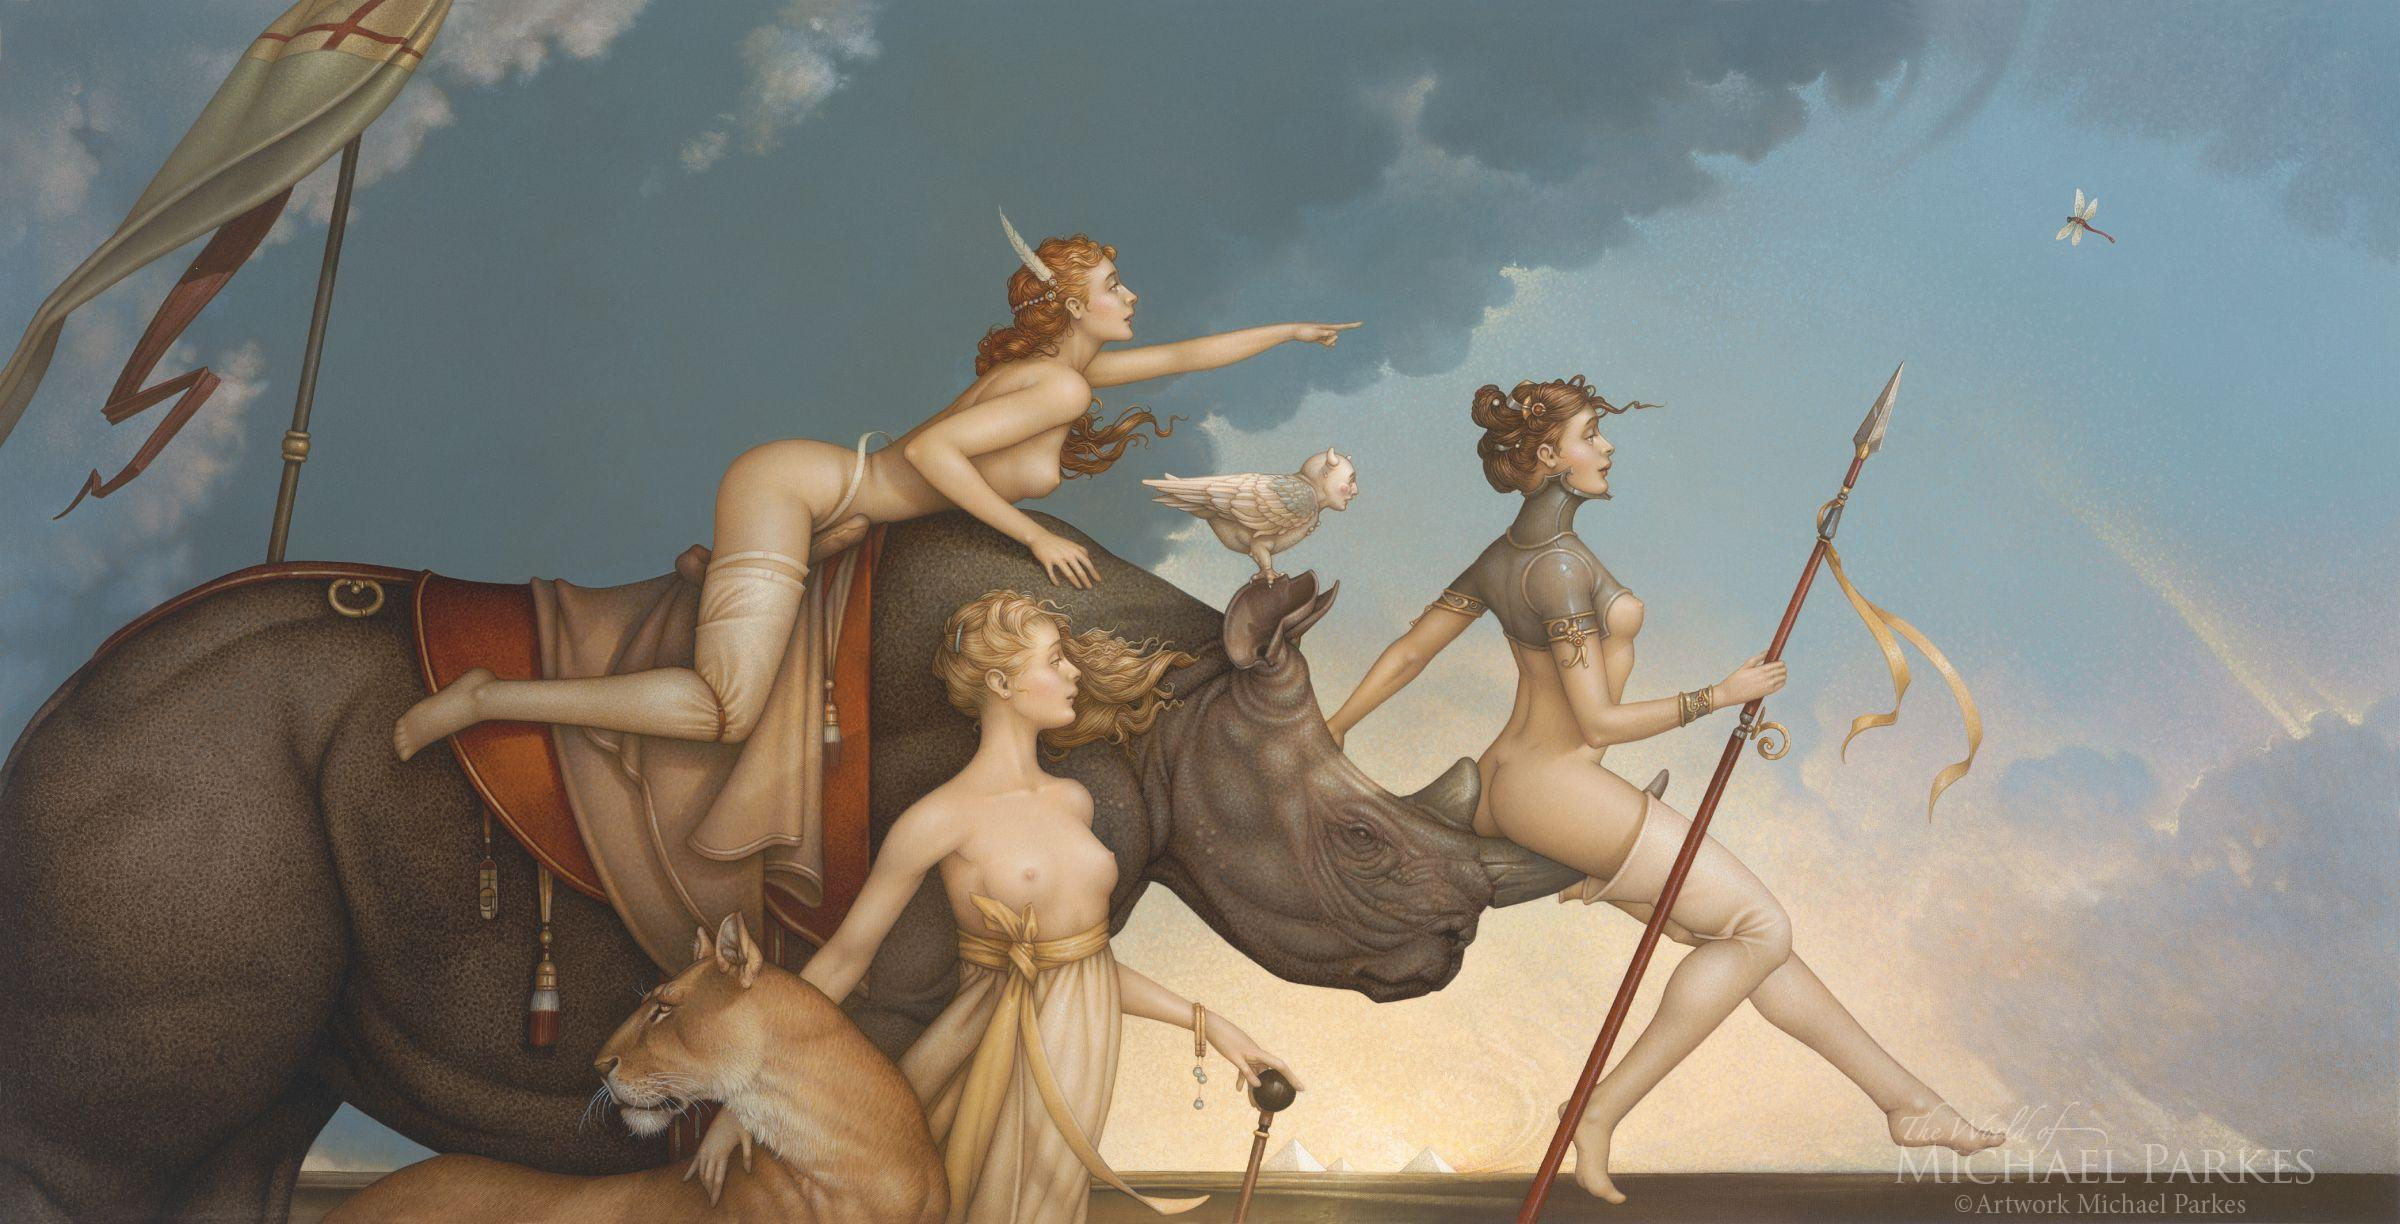 Well-known Michael Parkes Masterworks on Canvas | The World of Michael Parkes VR52